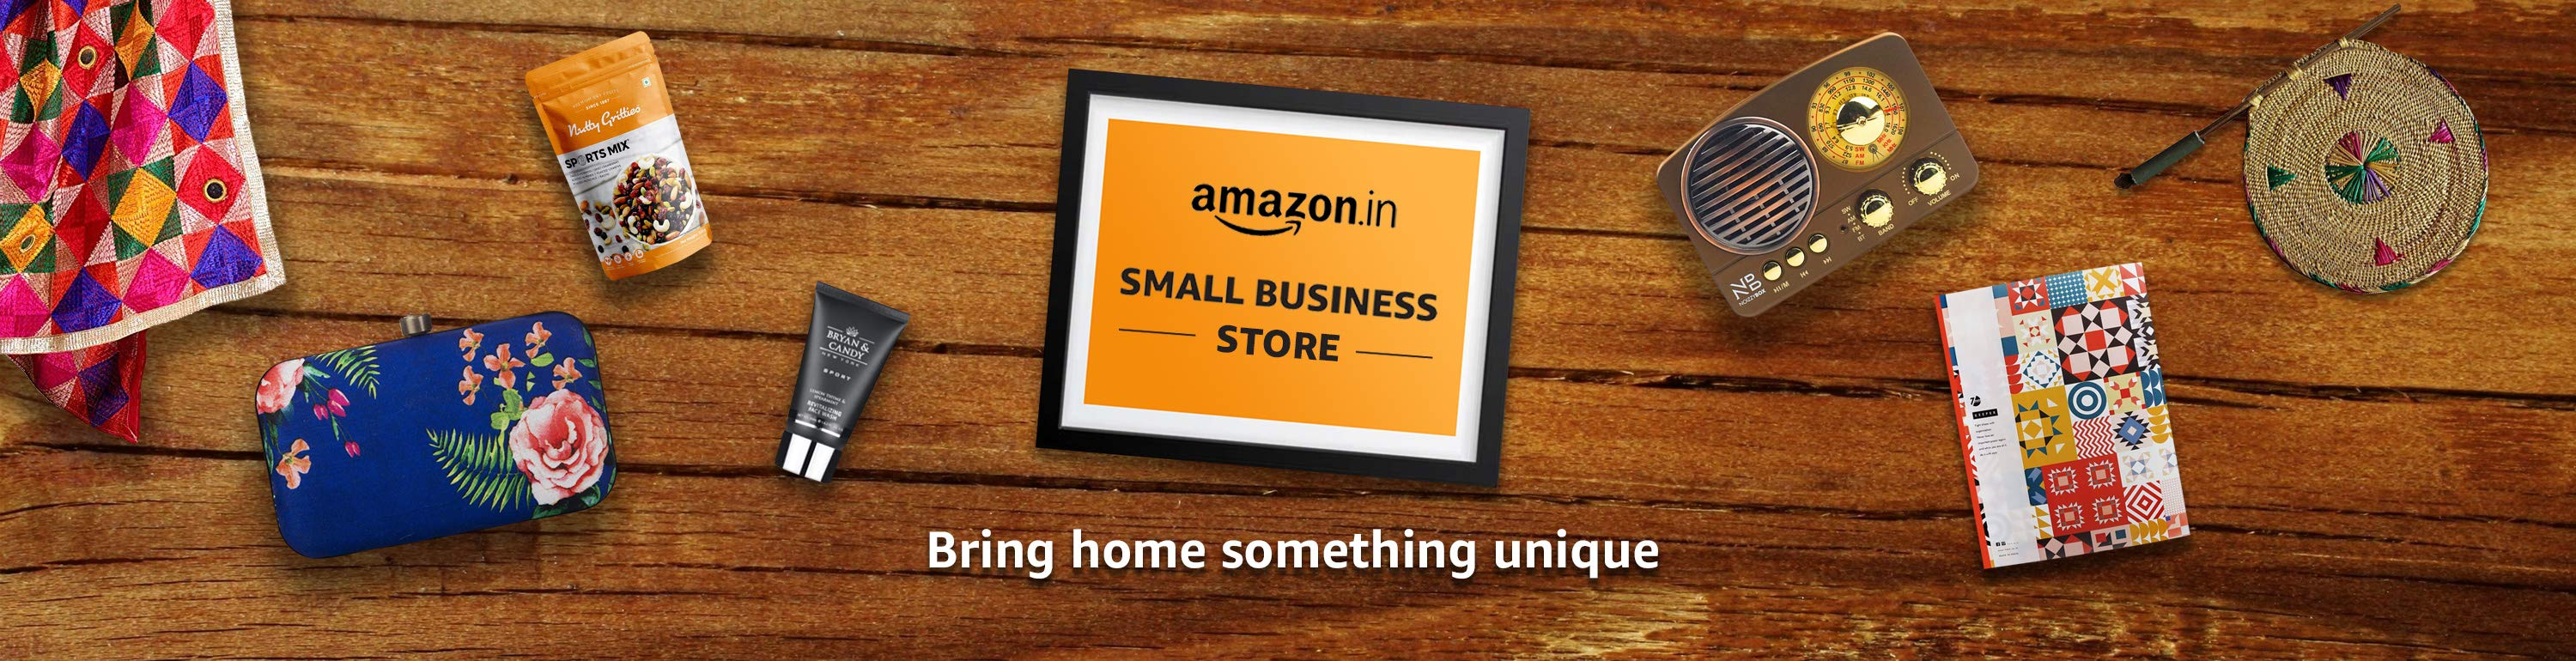 Small business day - Bring home something unique